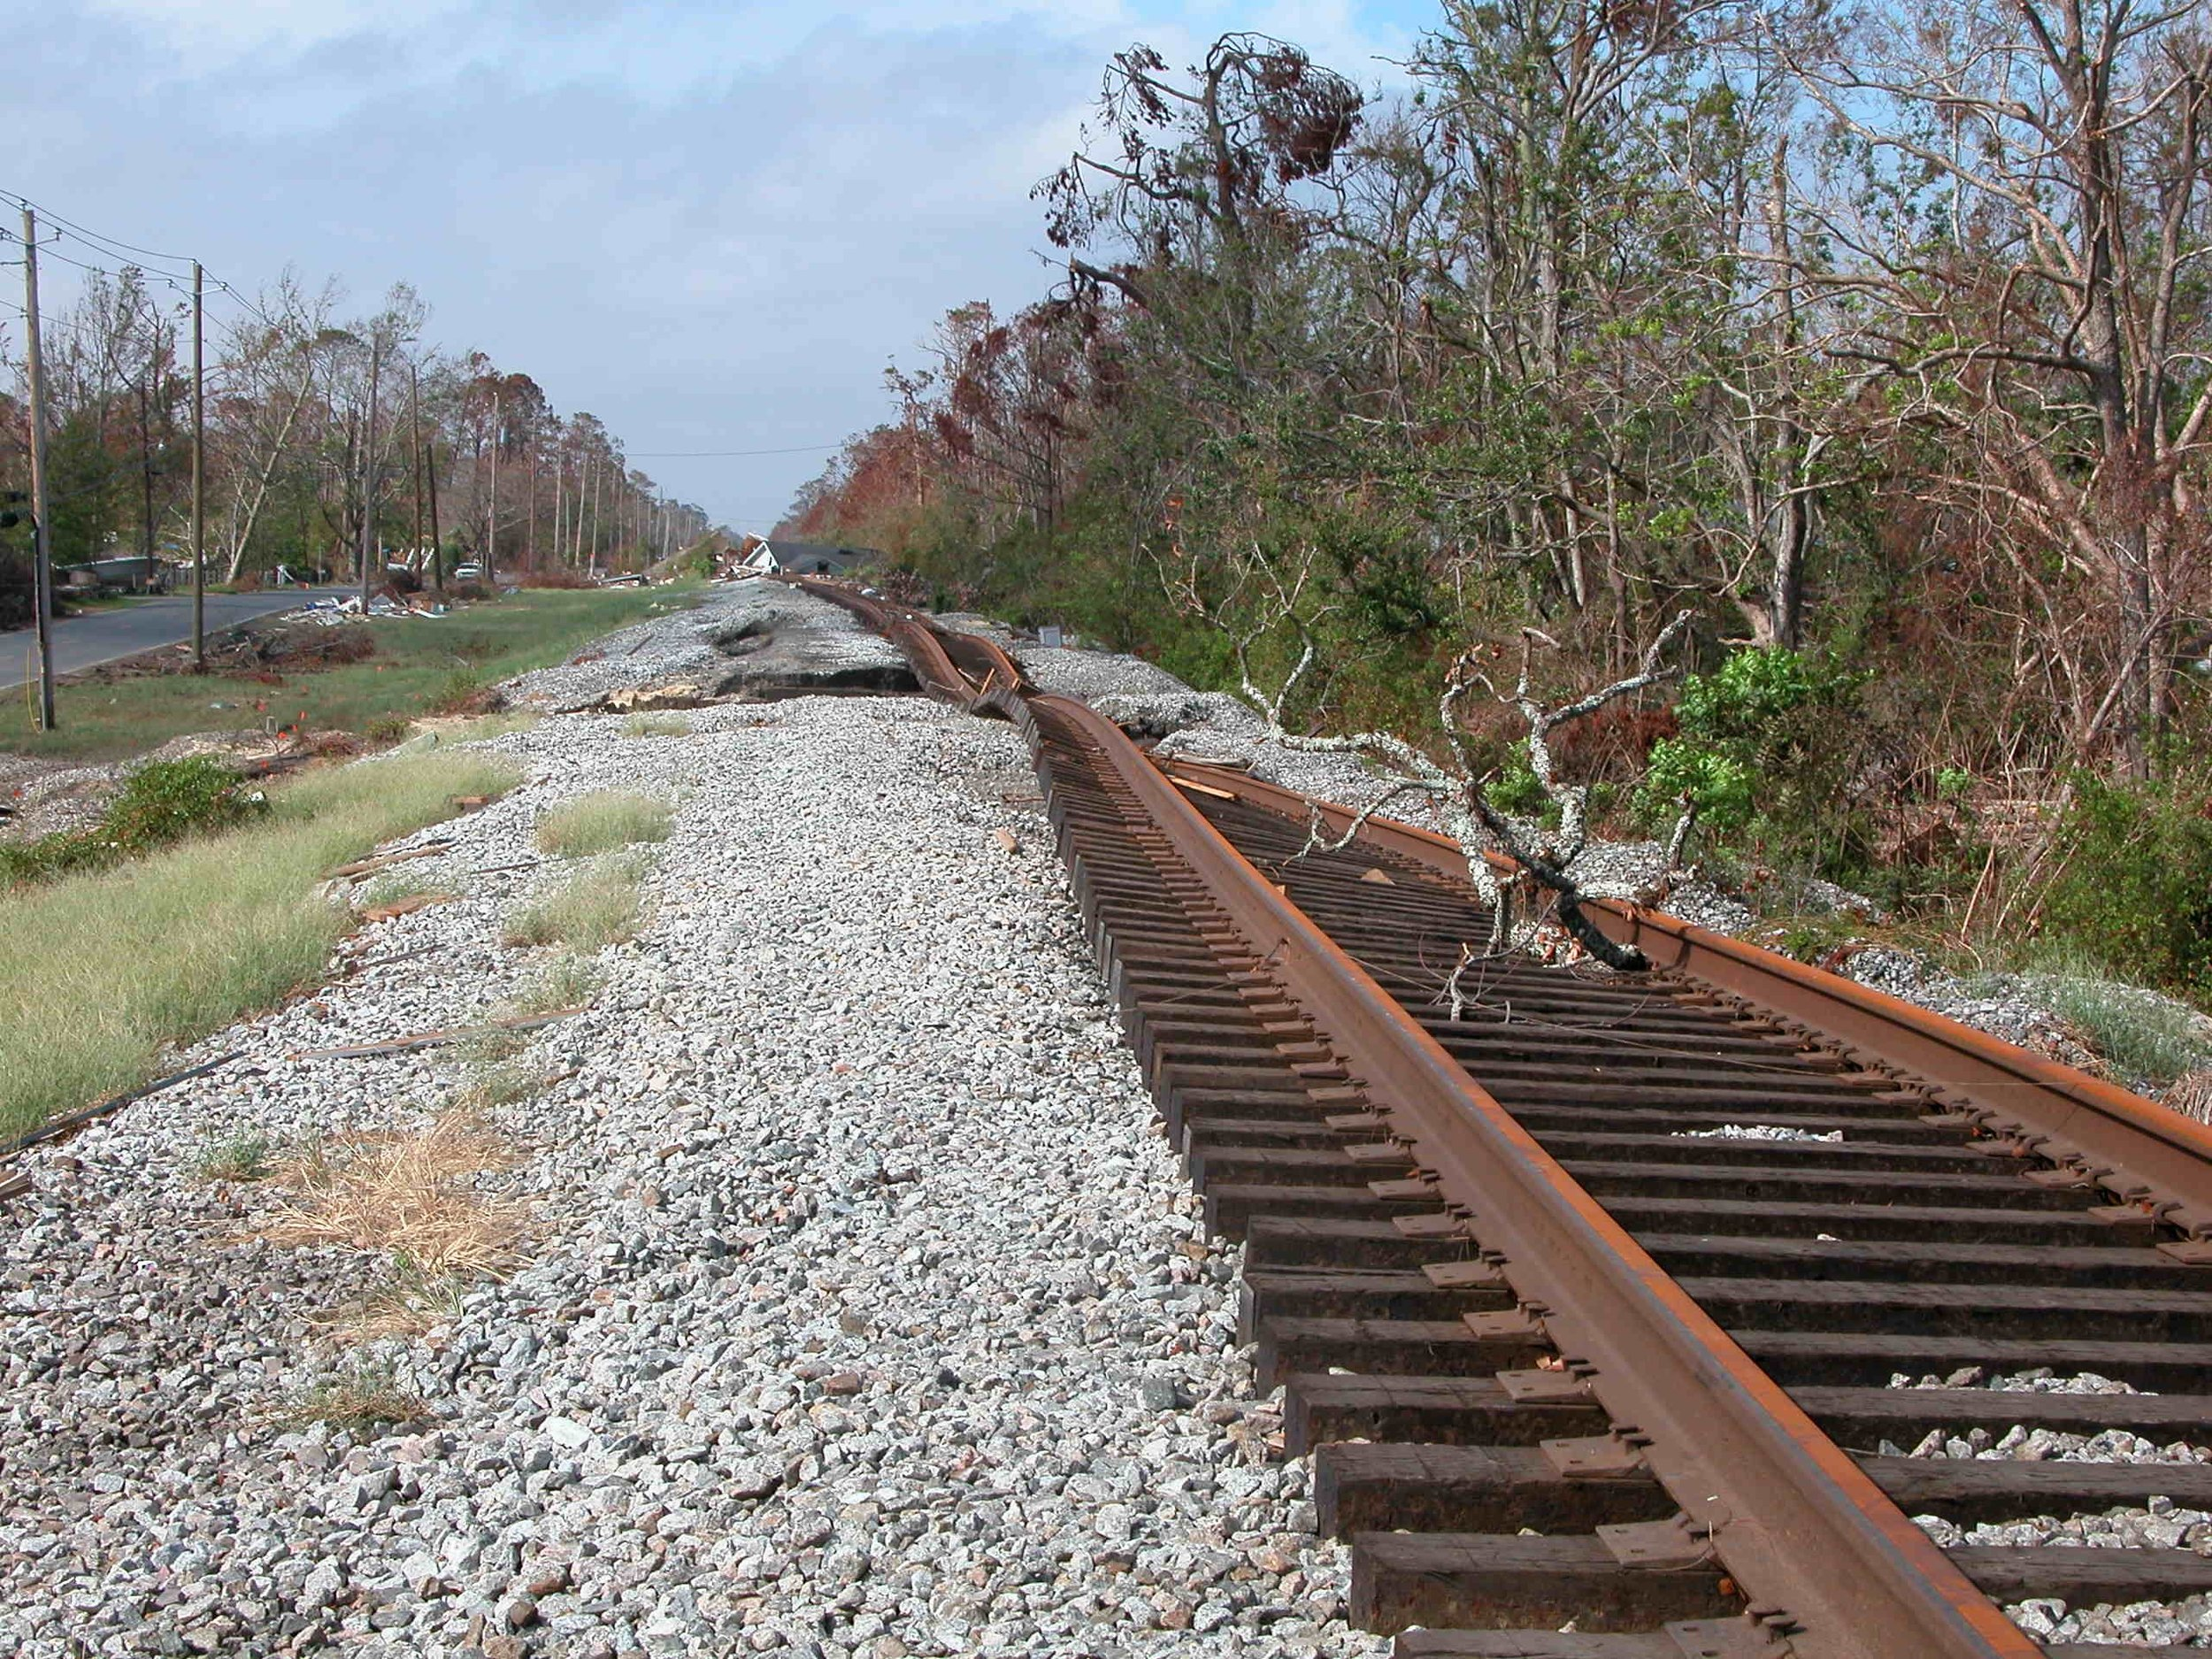 6. The twisted rails throughout the region served as a stark reminder of the power of a storm surge.